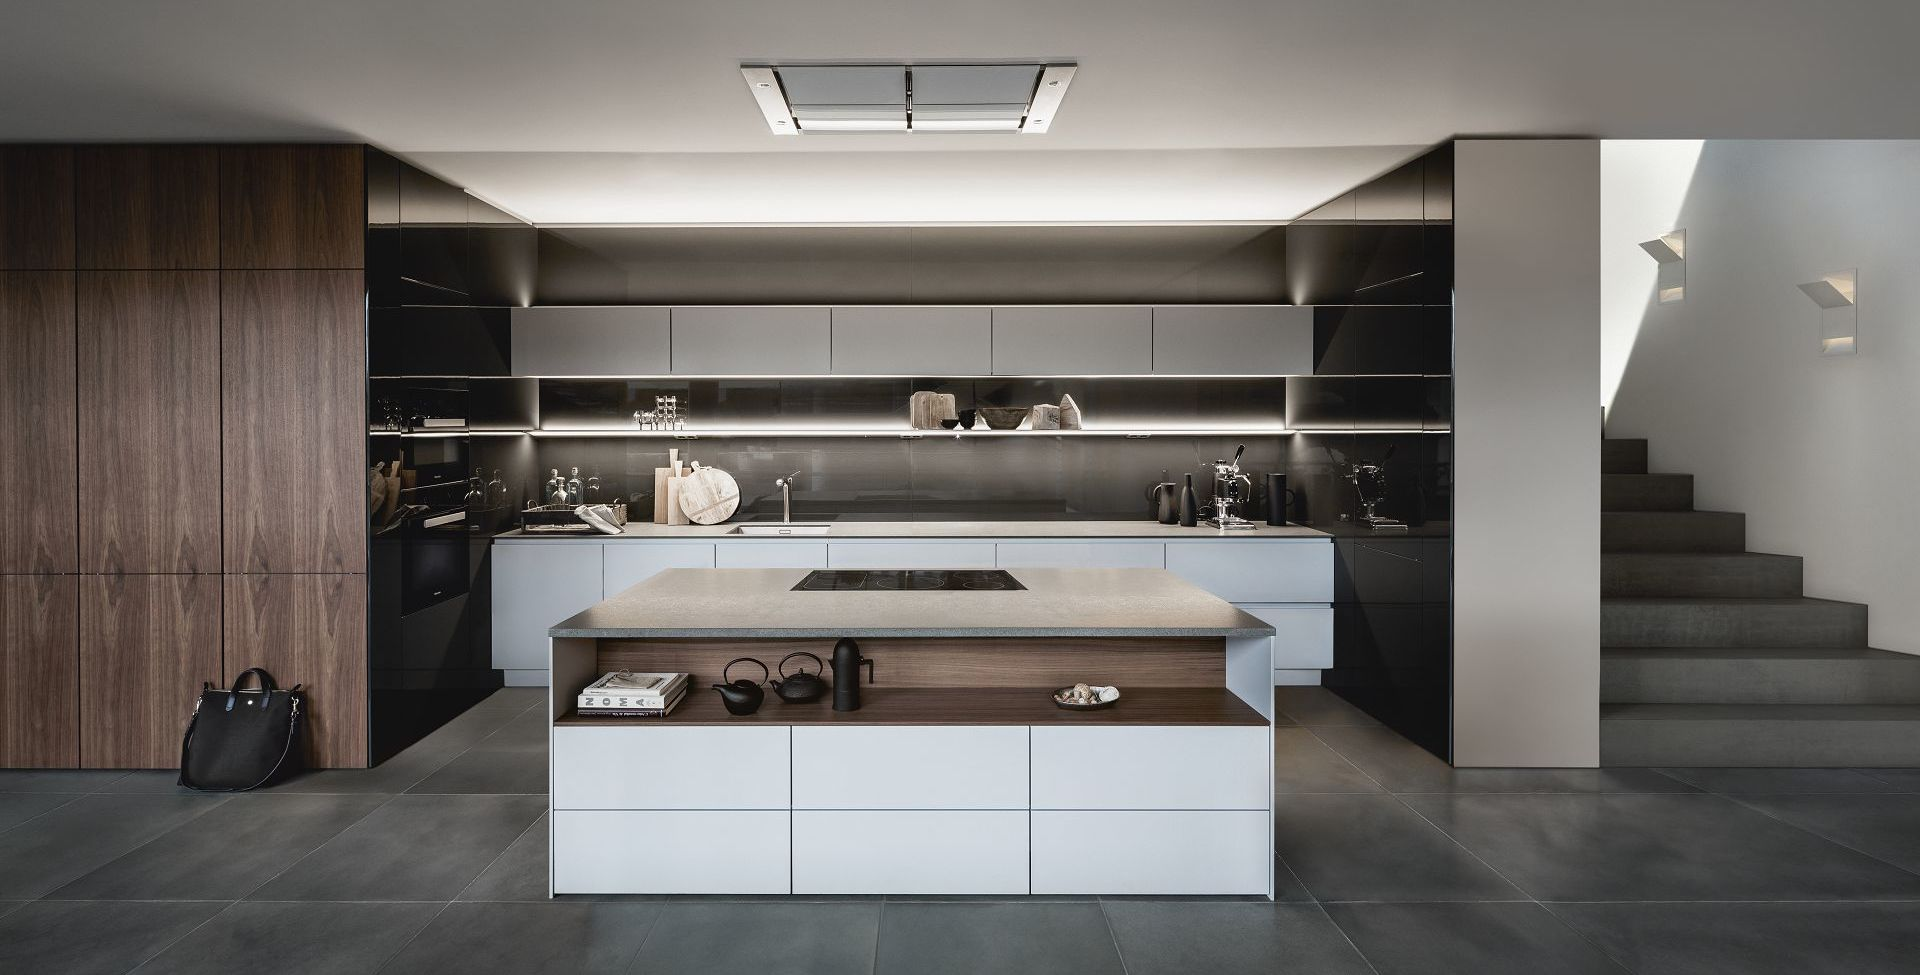 SieMatic Pure S2 SE in sterling grey matte and graphite grey with kitchen island